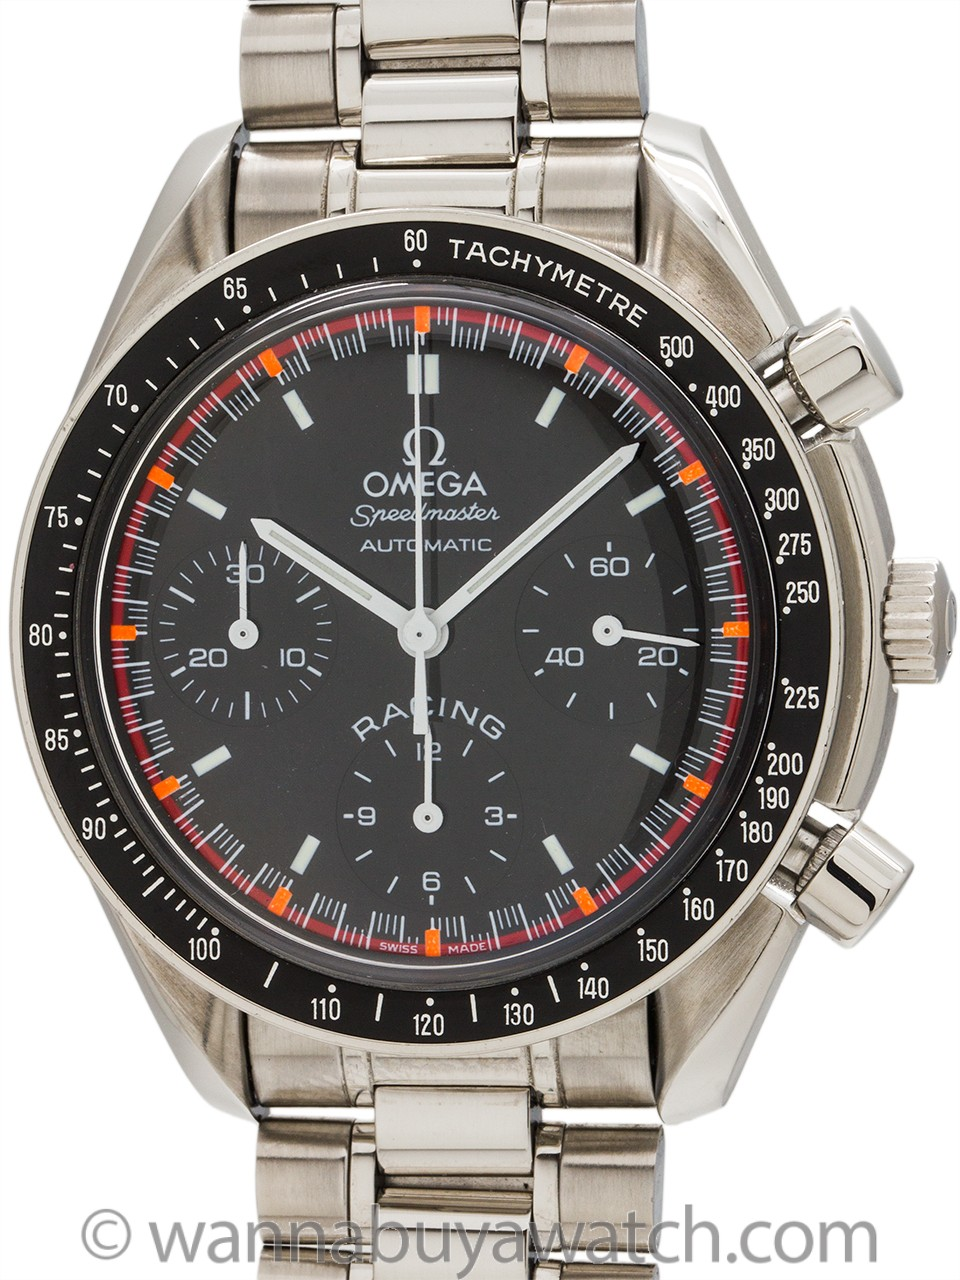 Omega Speedmaster Automatic Racing ref 3518.50 Michael Schumacher circa 2000